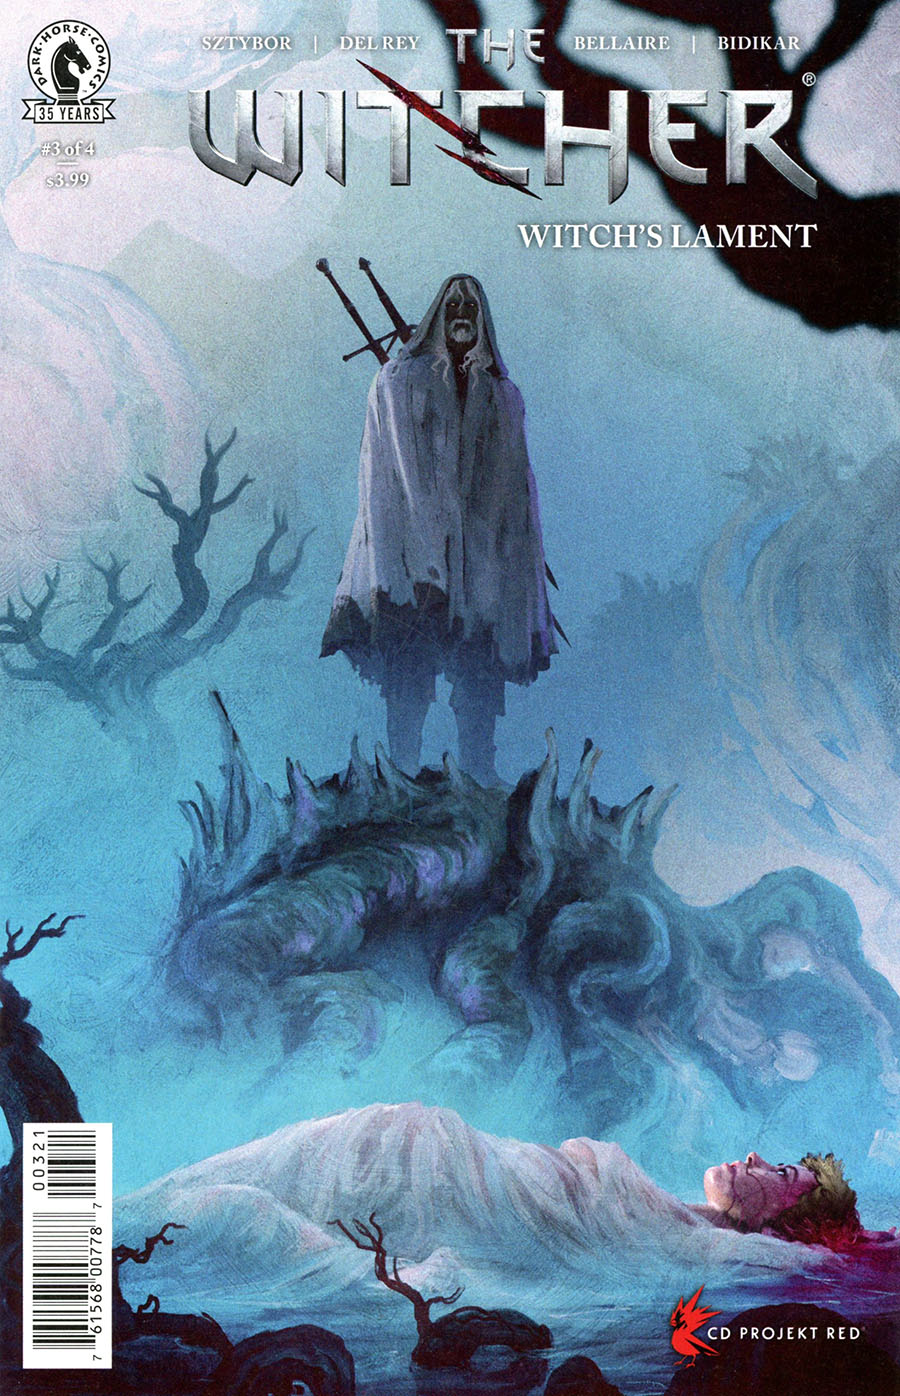 Witcher Witchs Lament #3 Cover B Variant Anato Finnstark Cover